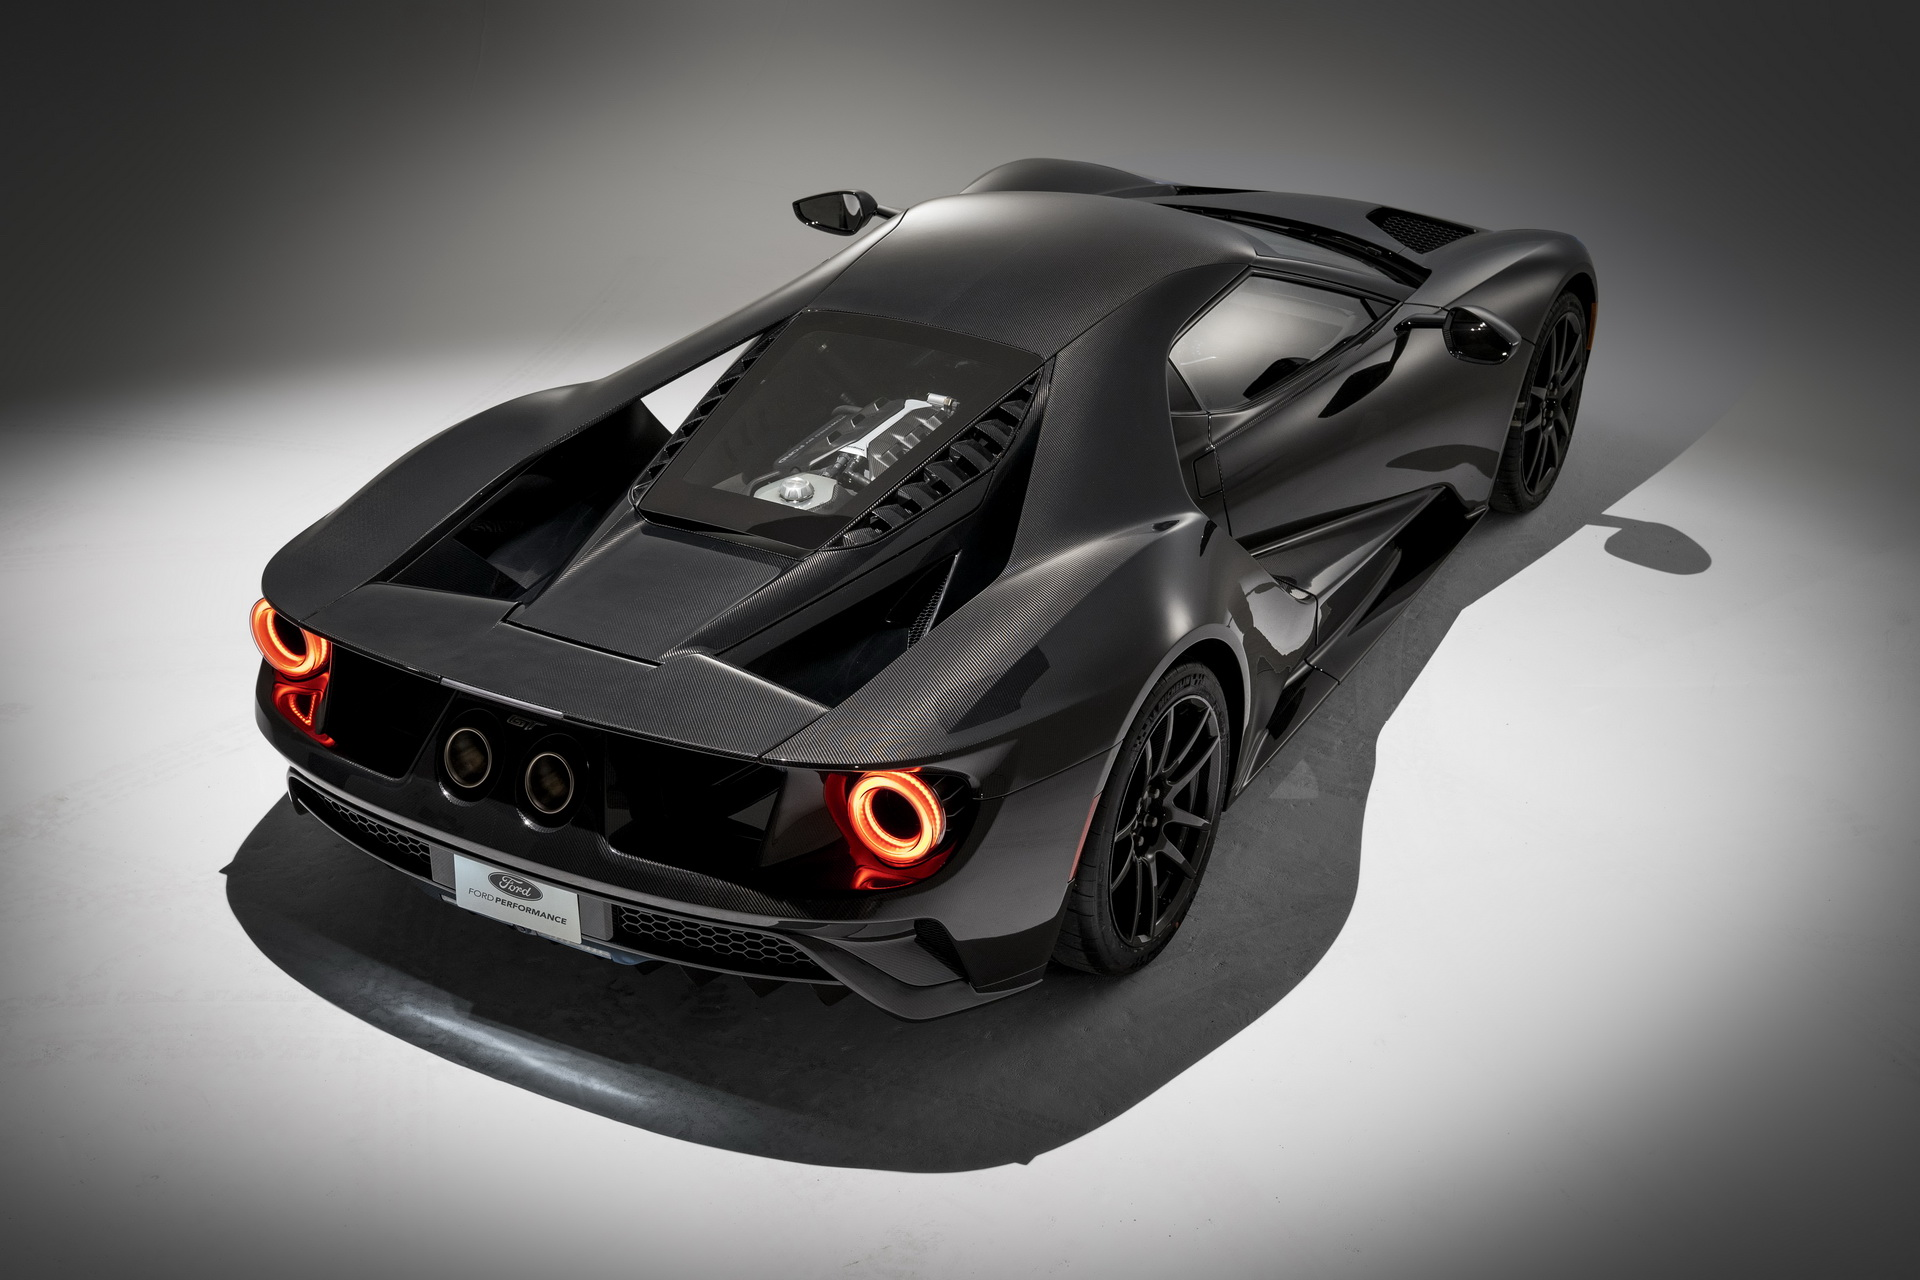 2020-ford-gt-liquid-carbon-edition-12